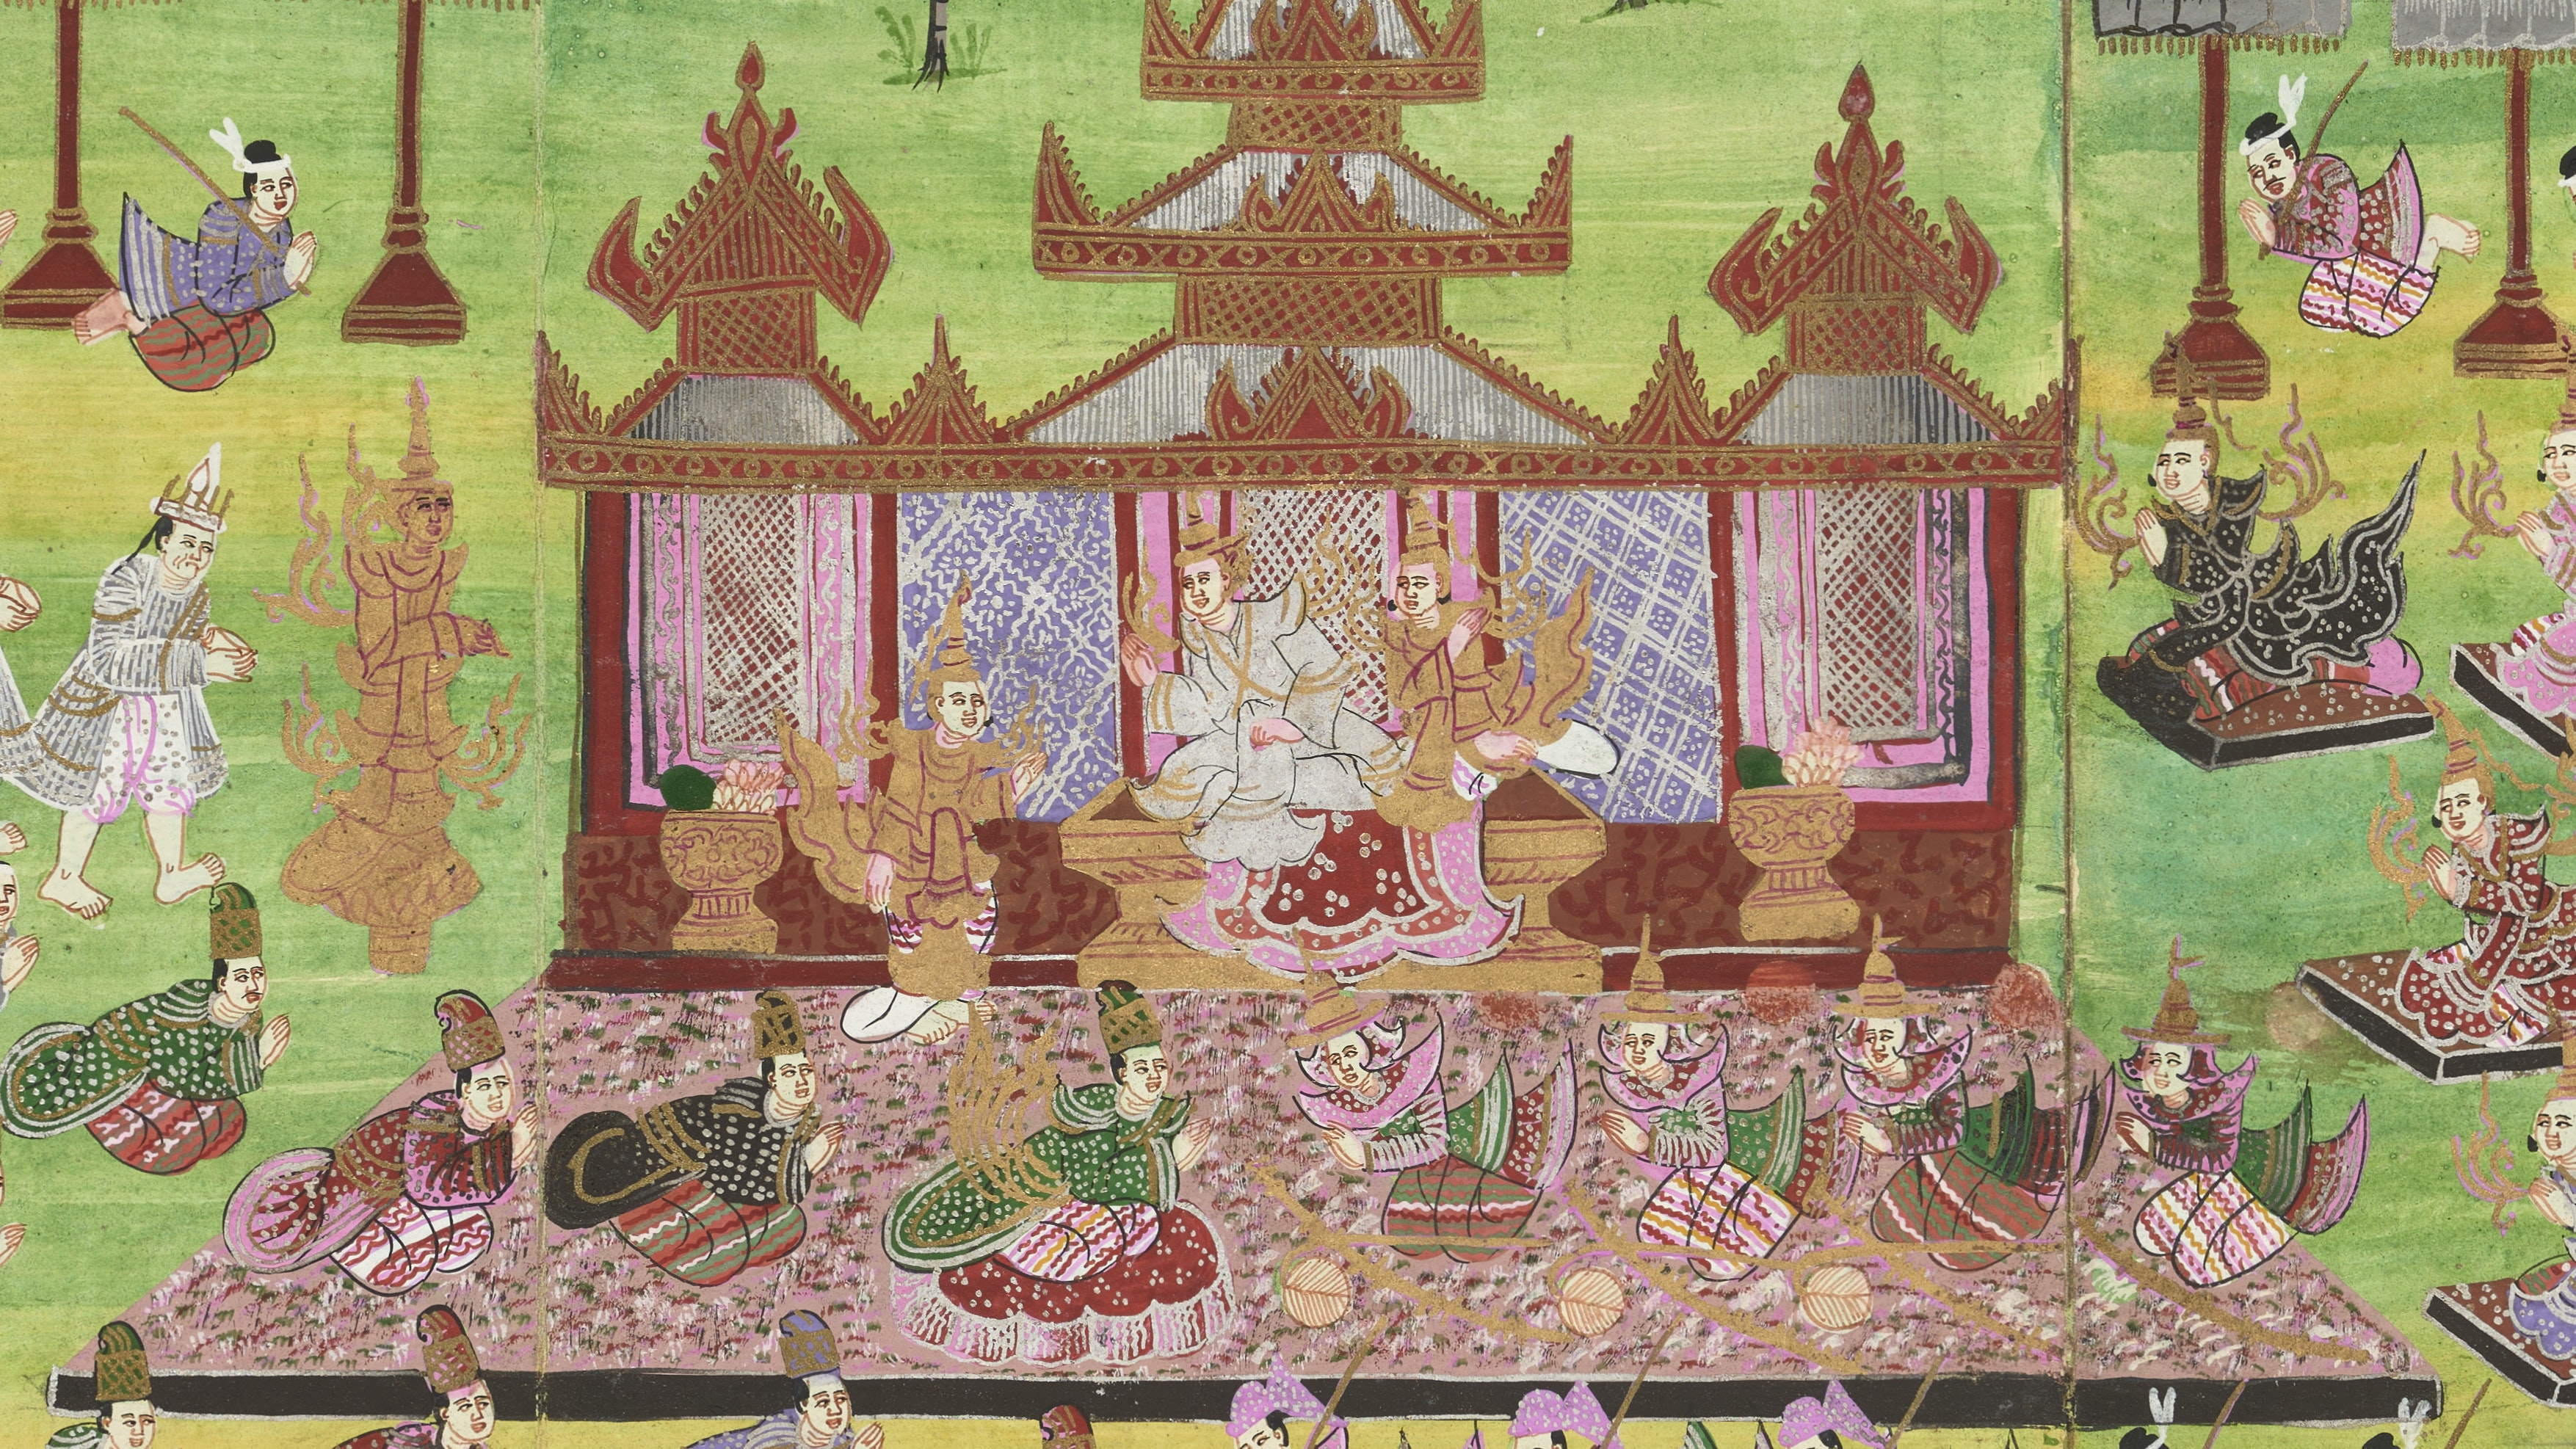 Ceremonies and festivities of the Burmese royal court (detail), 1875-1900; Myanmar (Burma), Mandalay; opaque watercolors, gold, and silver on paper;